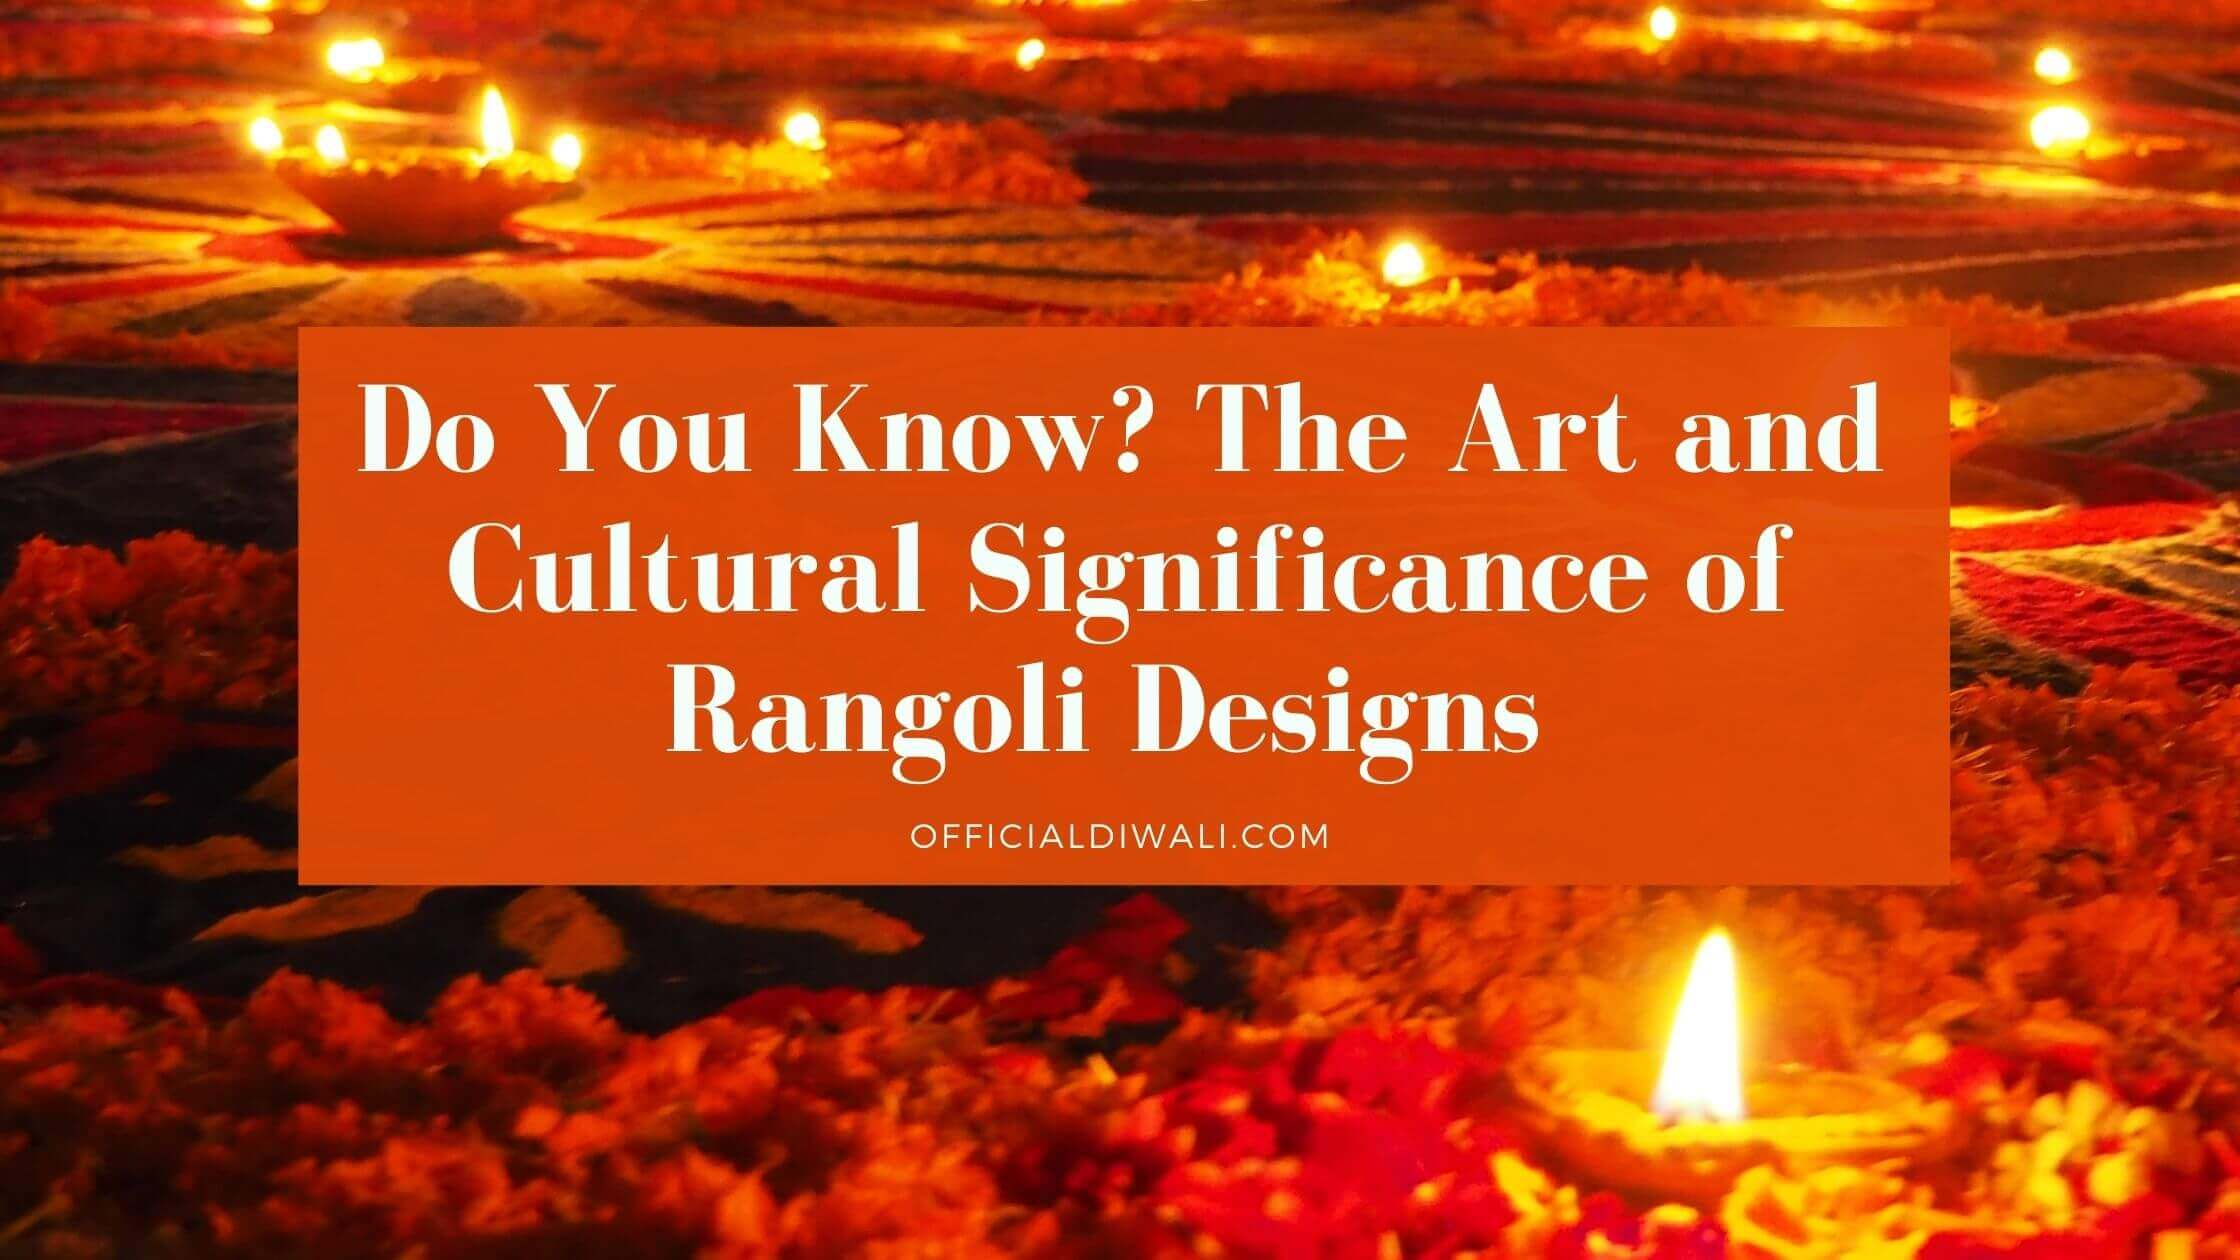 The Art and Cultural Significance of Rangoli Designs